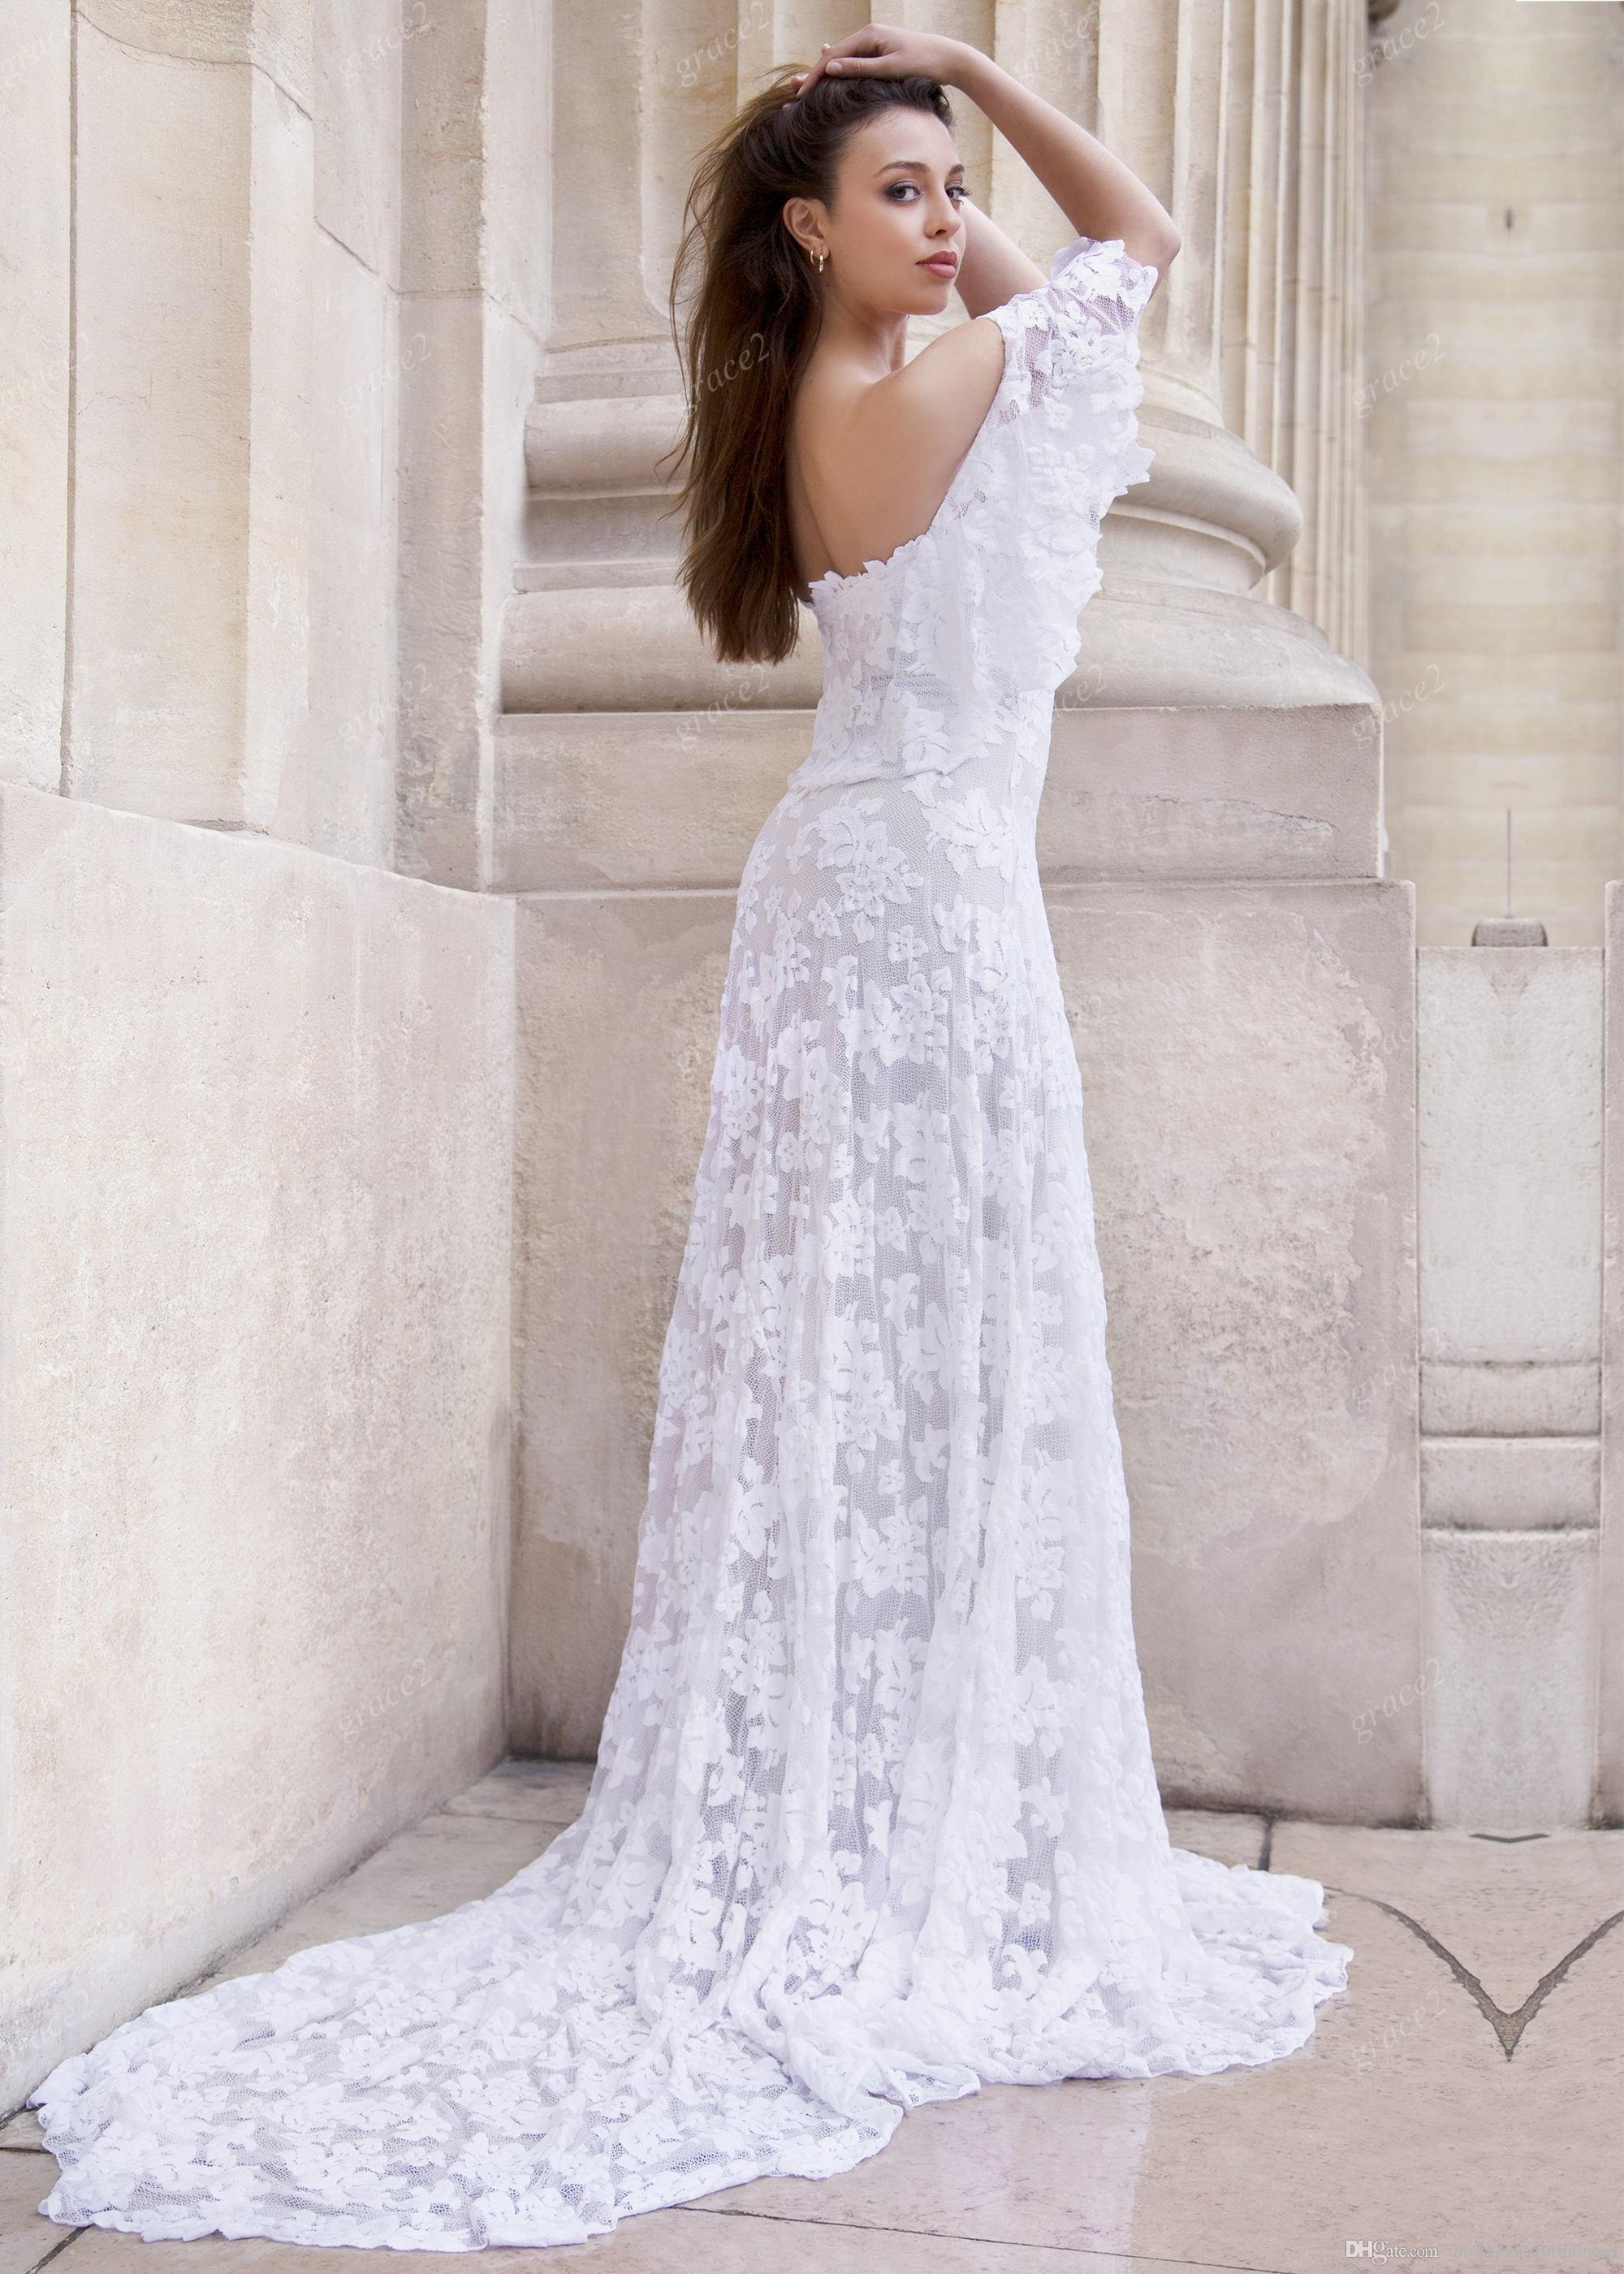 Fully Lace Bohemian Wedding Dresses 2019 with Off the Shoulder and Sexy Back Summer Beach Bridal Dress Custom Boho